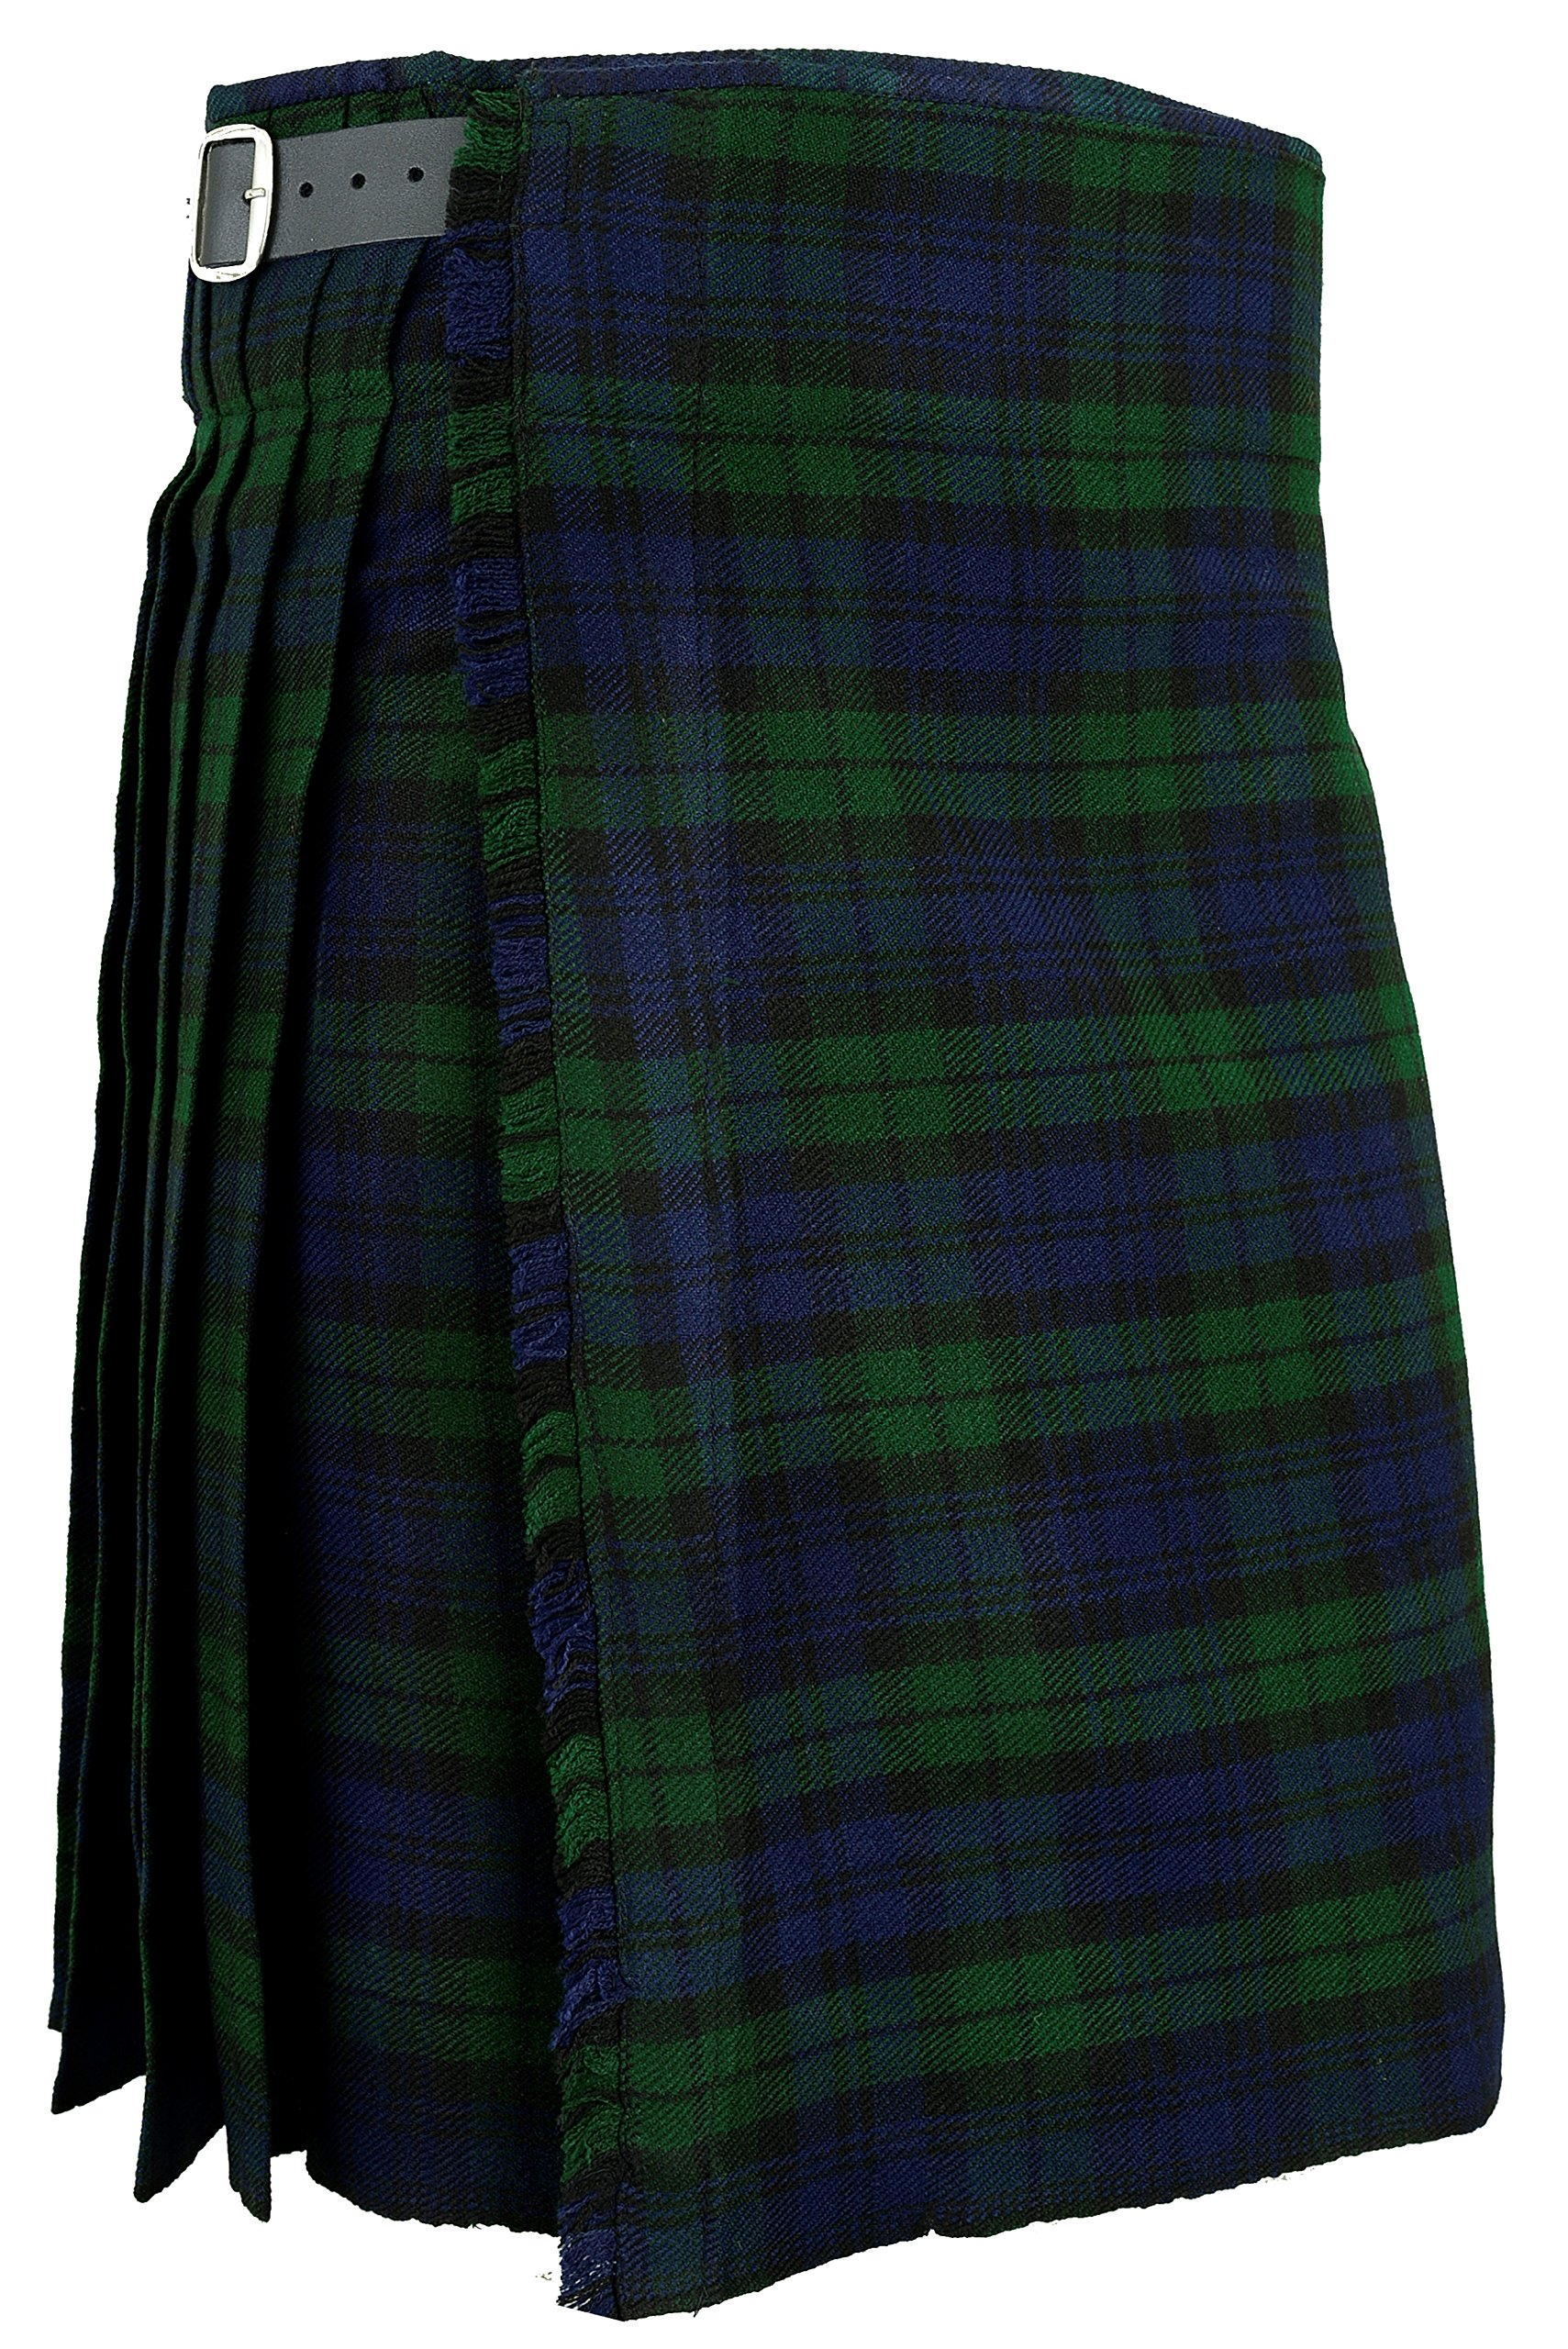 Scottish Traditional Kilt Blackwatch Tartan (W32)